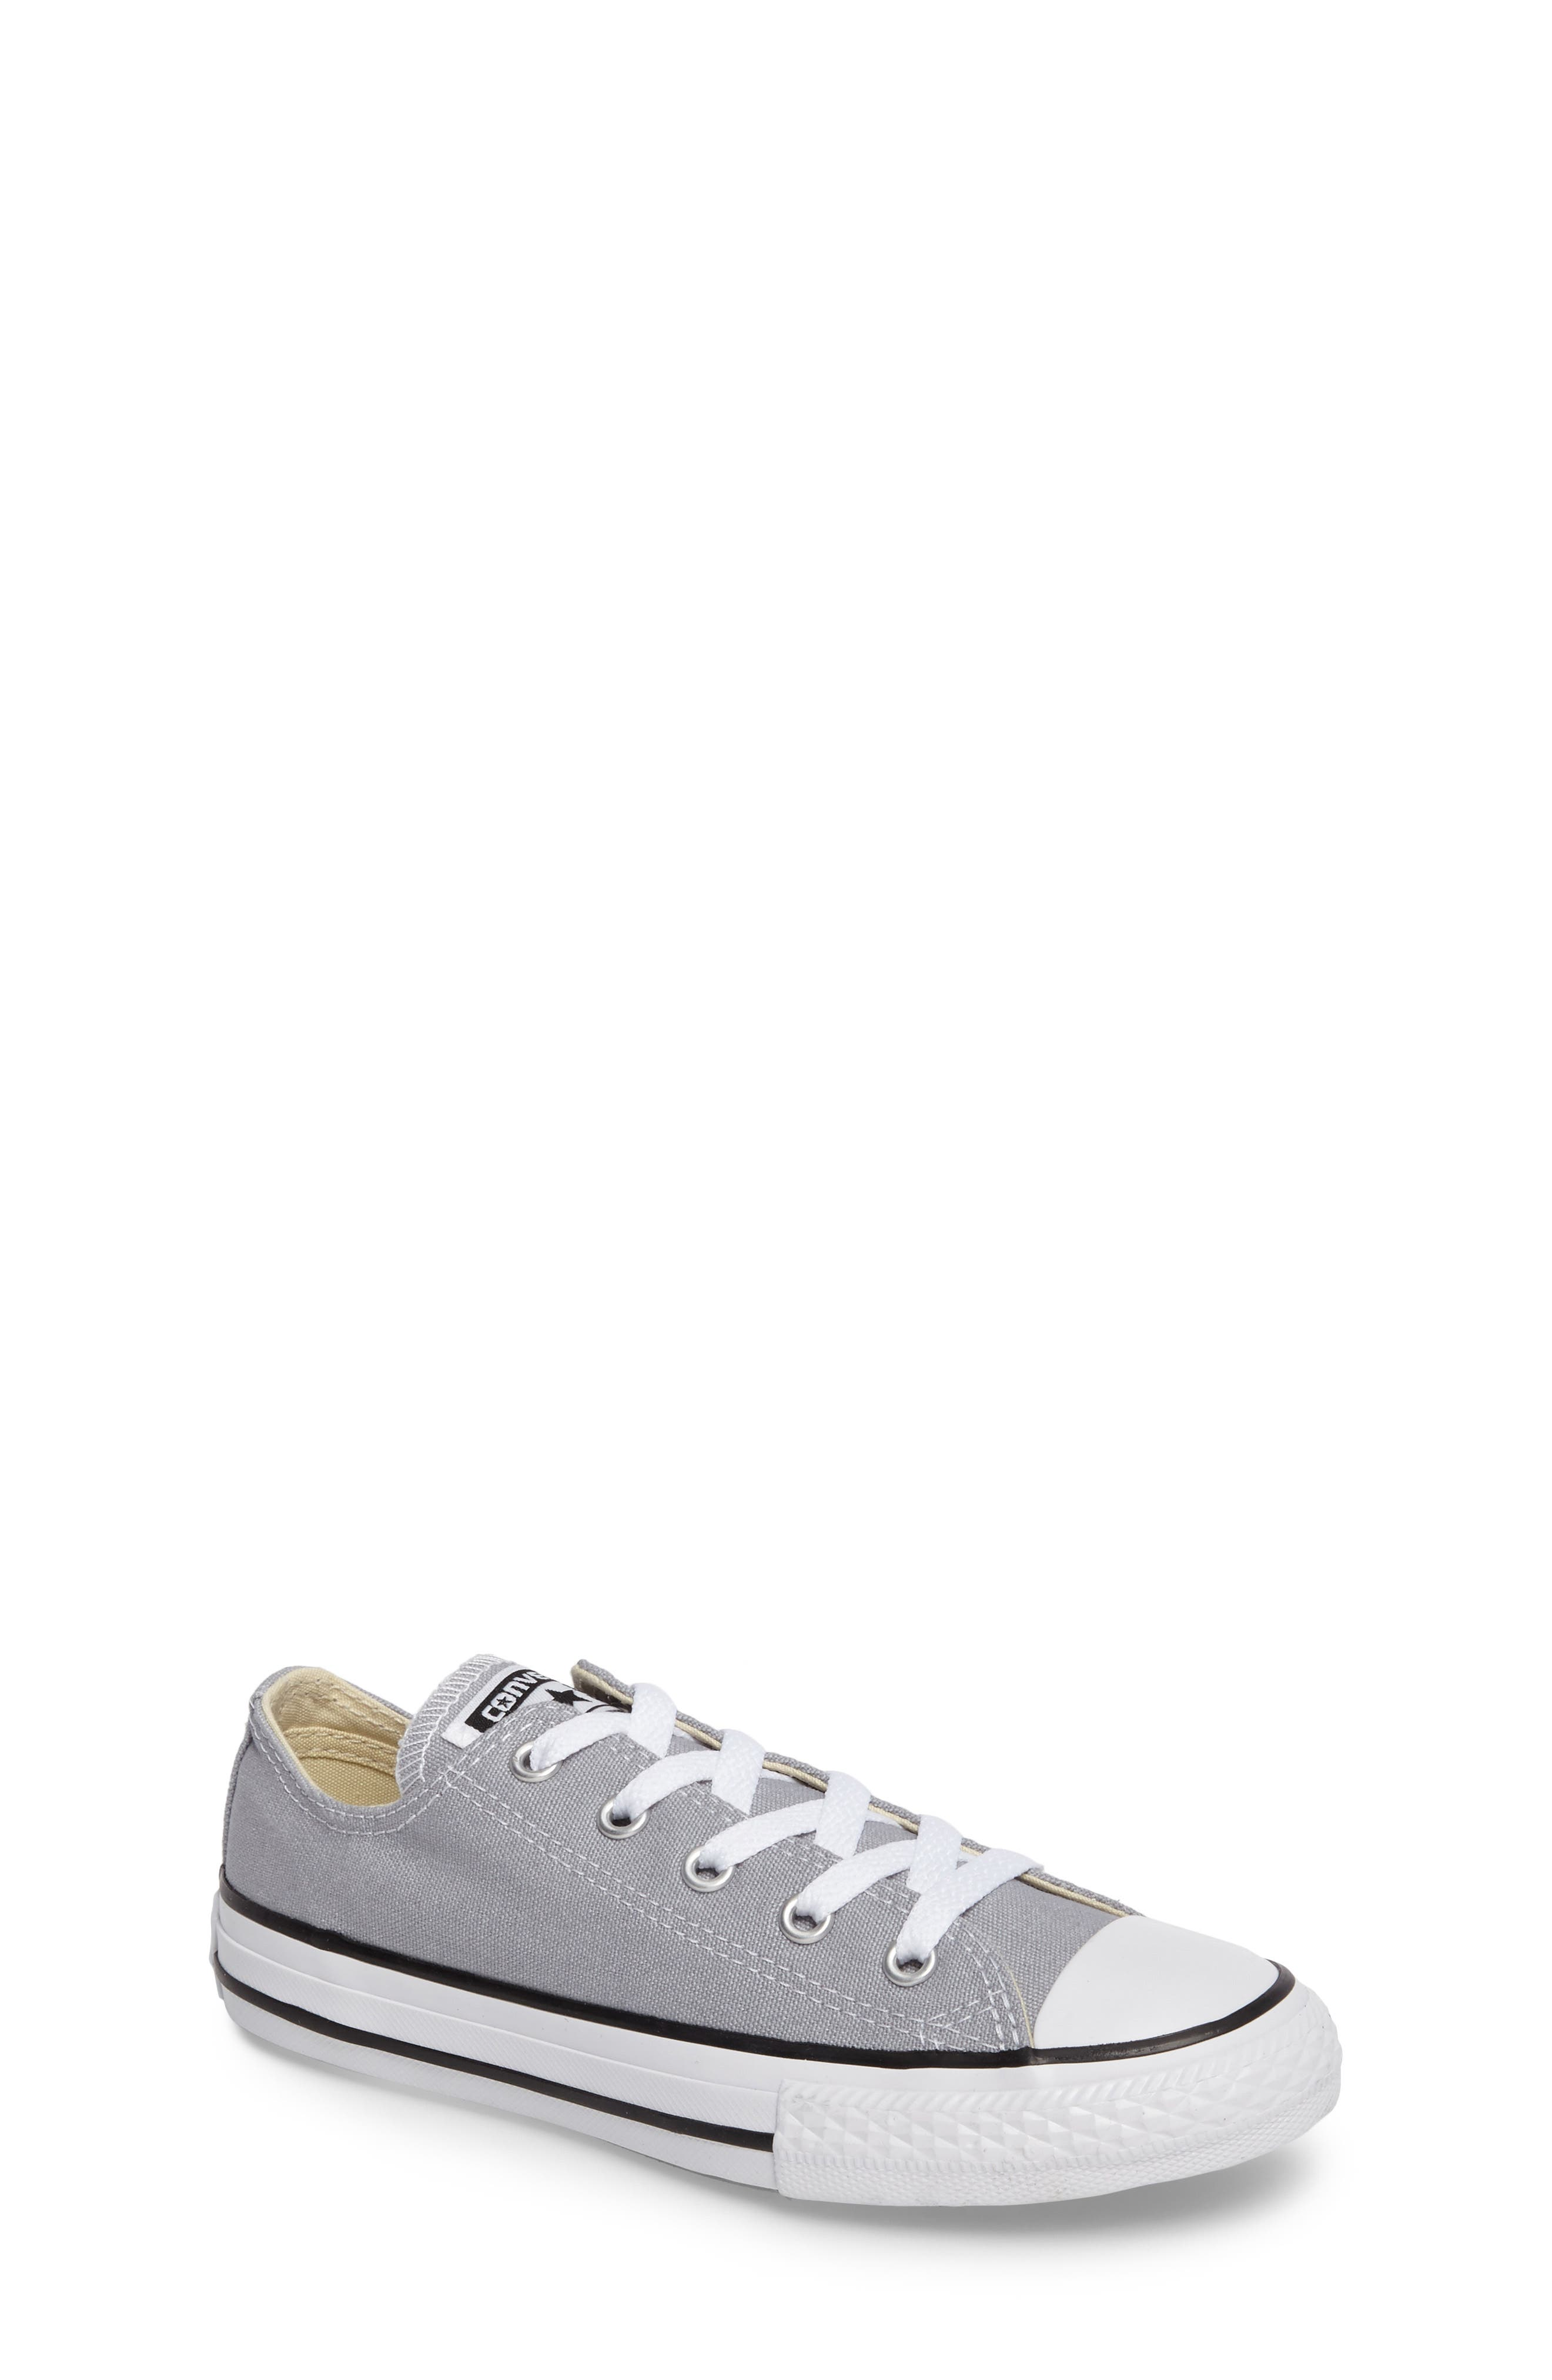 Alternate Image 1 Selected - Converse Chuck Taylor® All Star® 'Ox' Low Top Sneaker (Baby, Walker, Toddler & Little Kid)